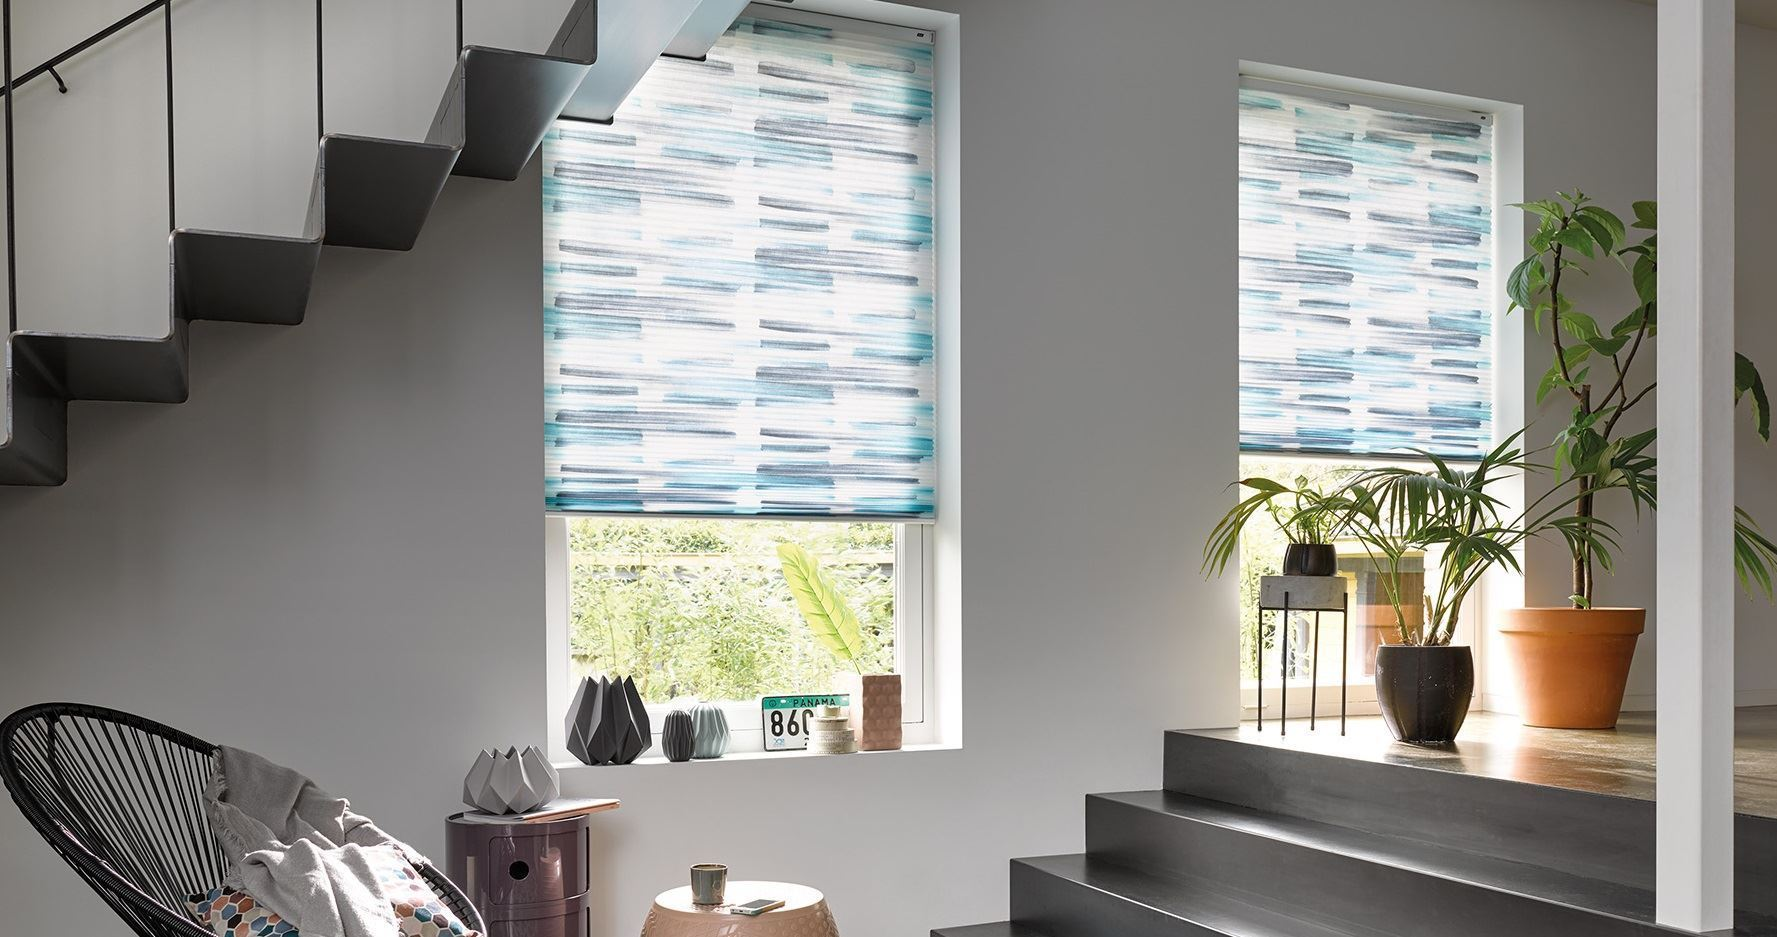 Afbeelding van Luxaflex® Duette® Shades 32 mm Top Down Bottom Up&Eindloos koord